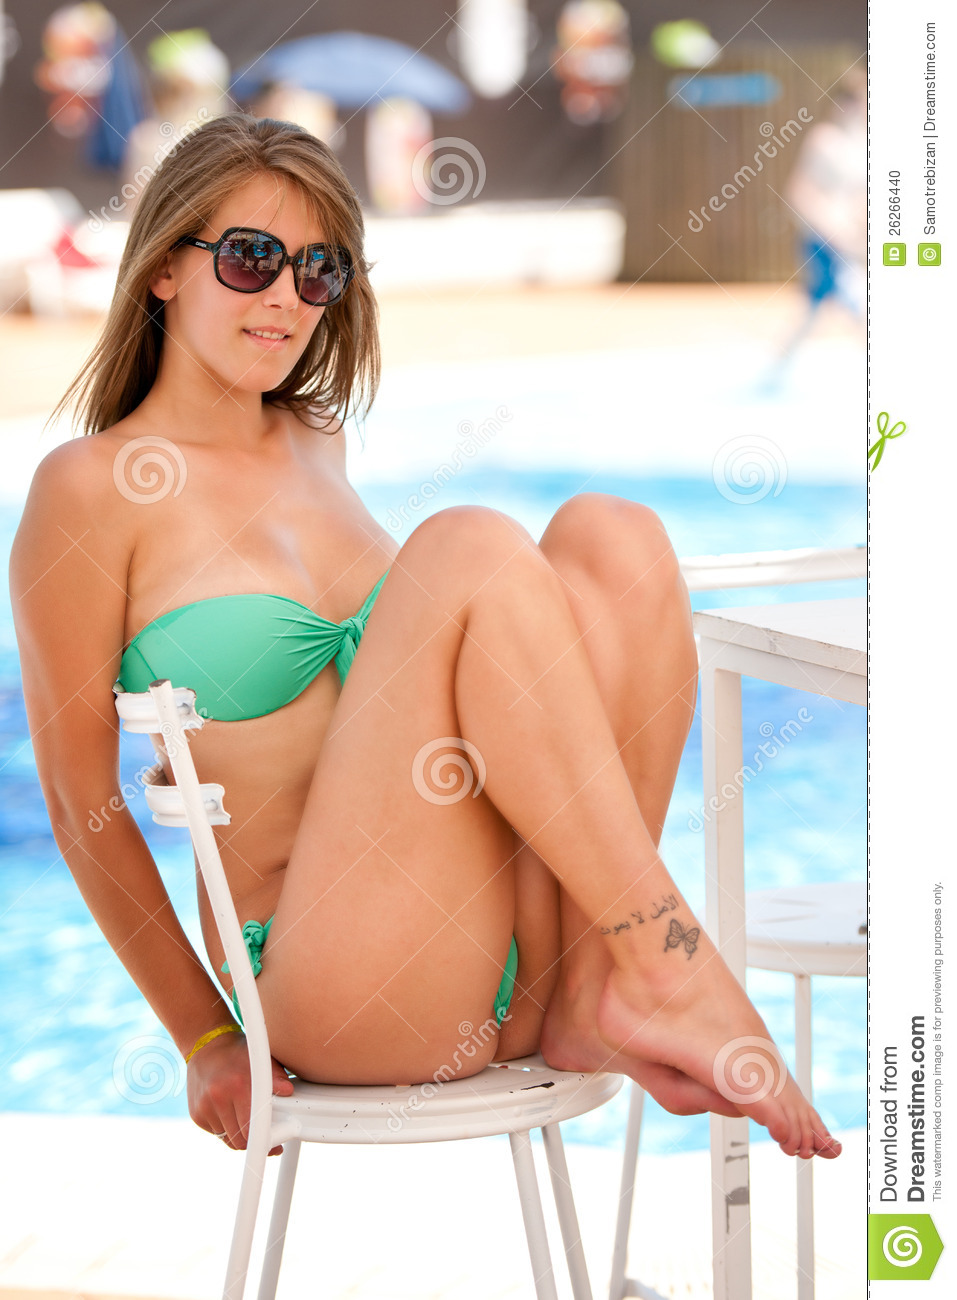 Cute Young Woman Resting Near Swimming Pool Stock Photo - Image: 26266440